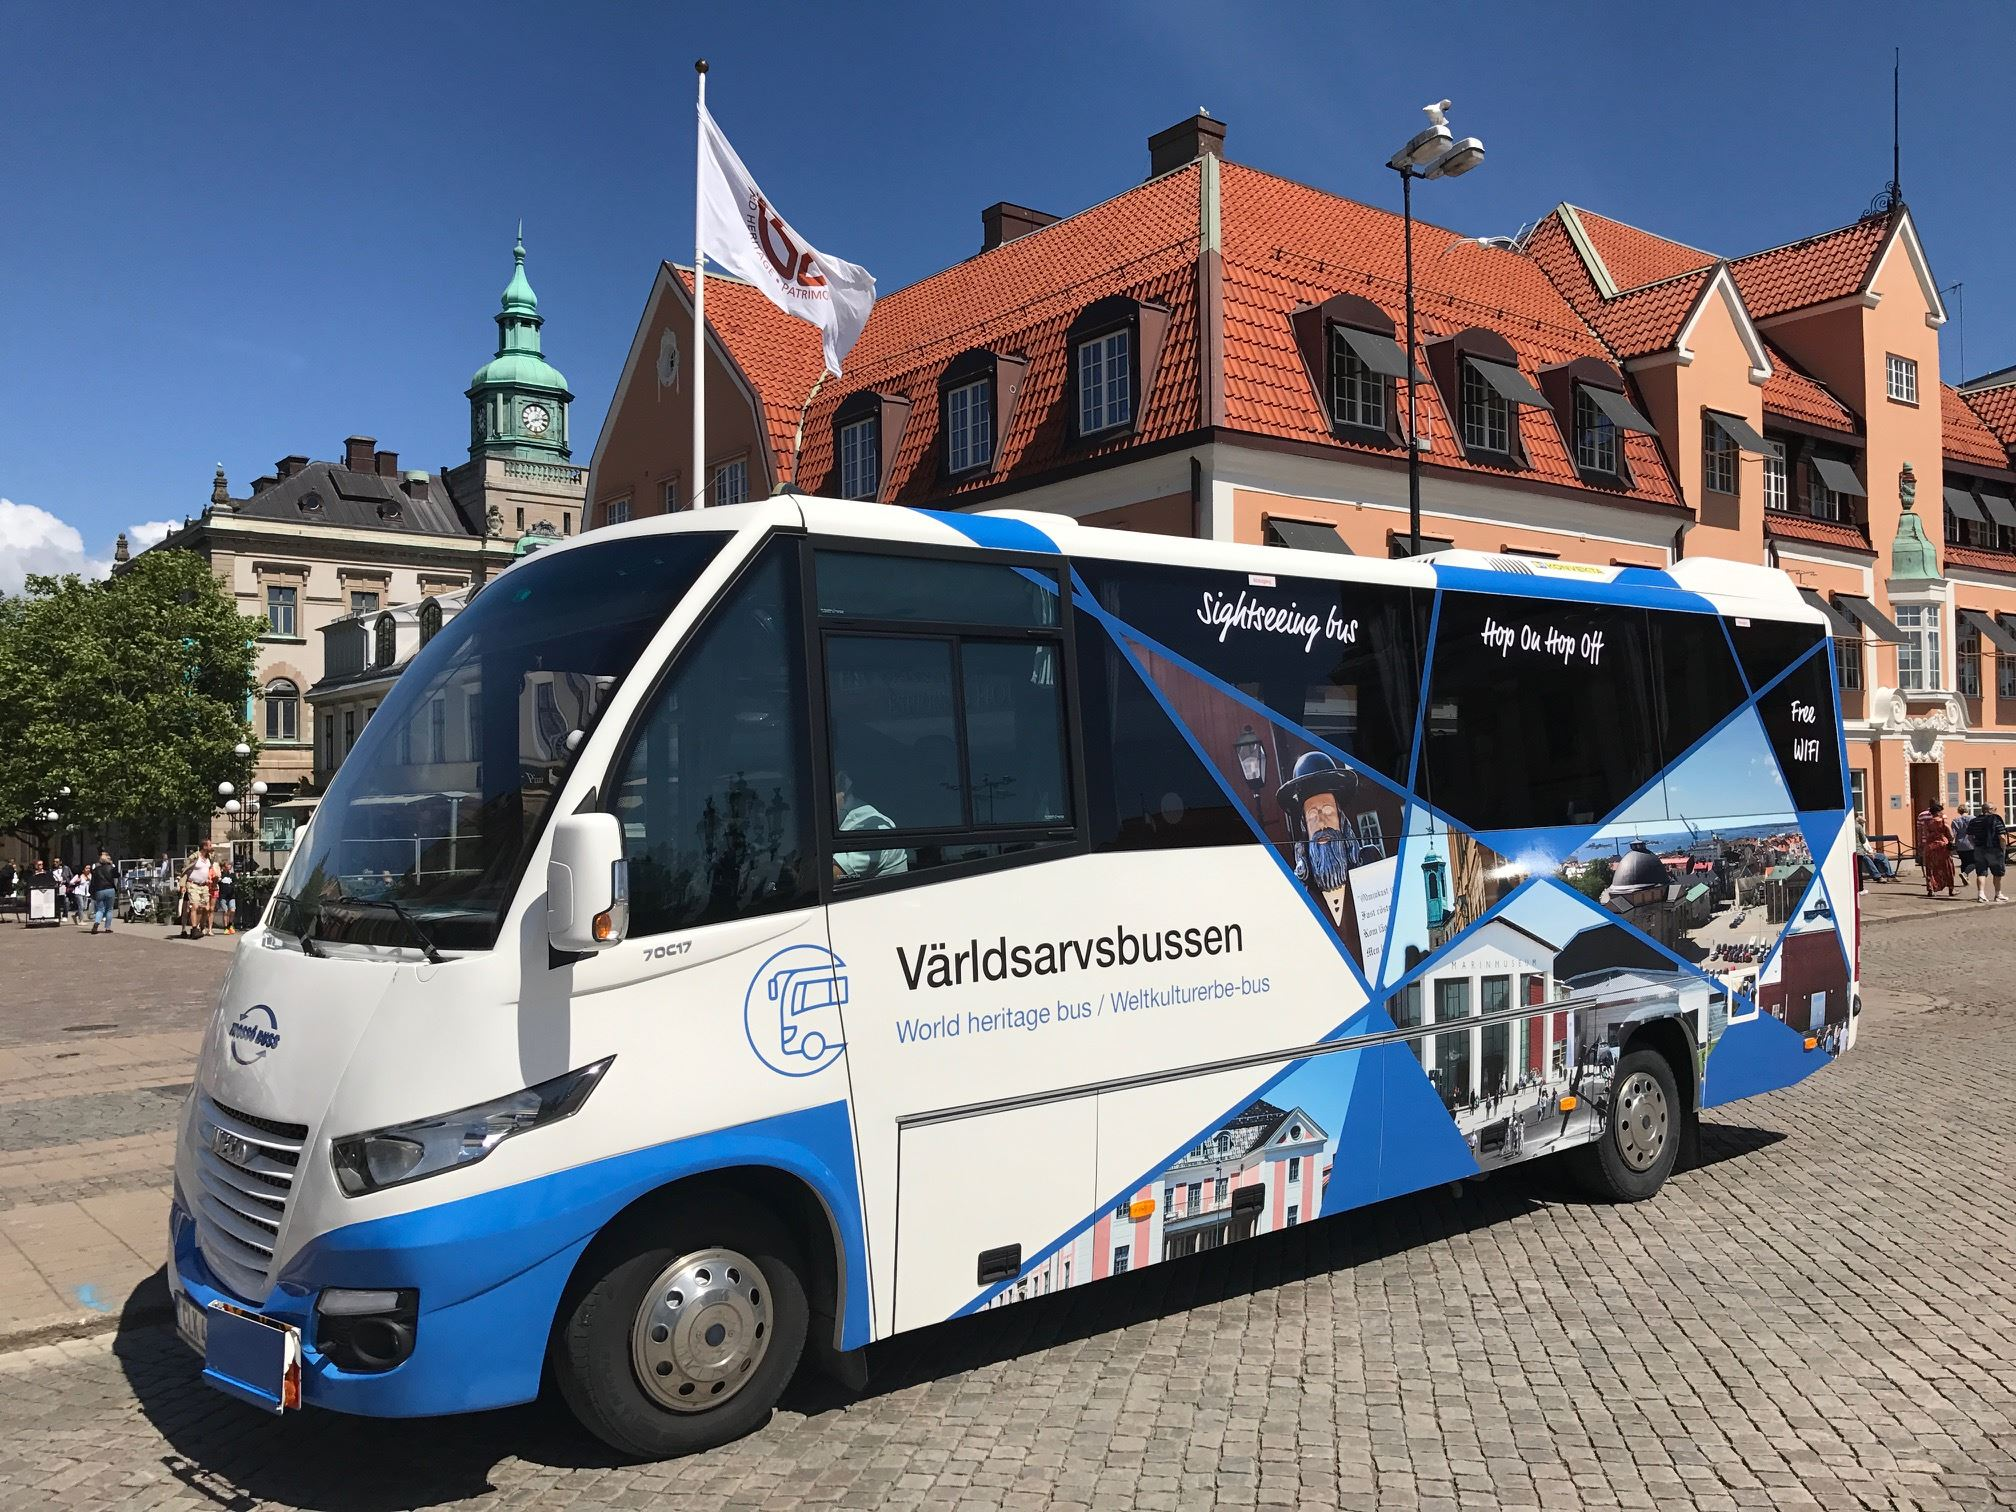 Sightseeingbus - The world heritage bus